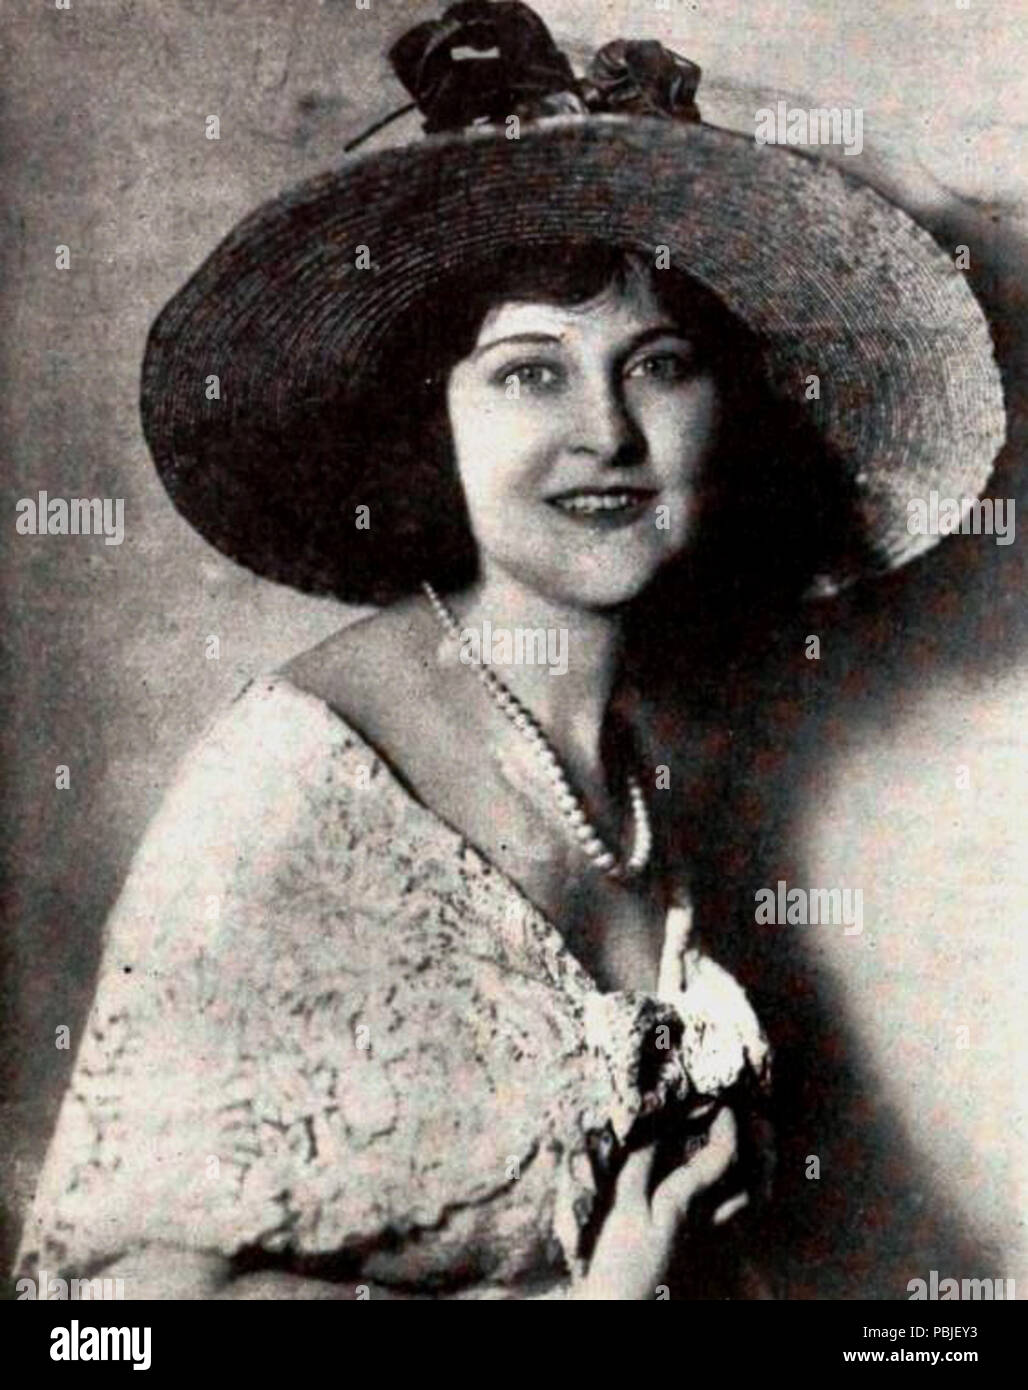 Clara Bow Porno picture Letha Weapons,Janine Sutto